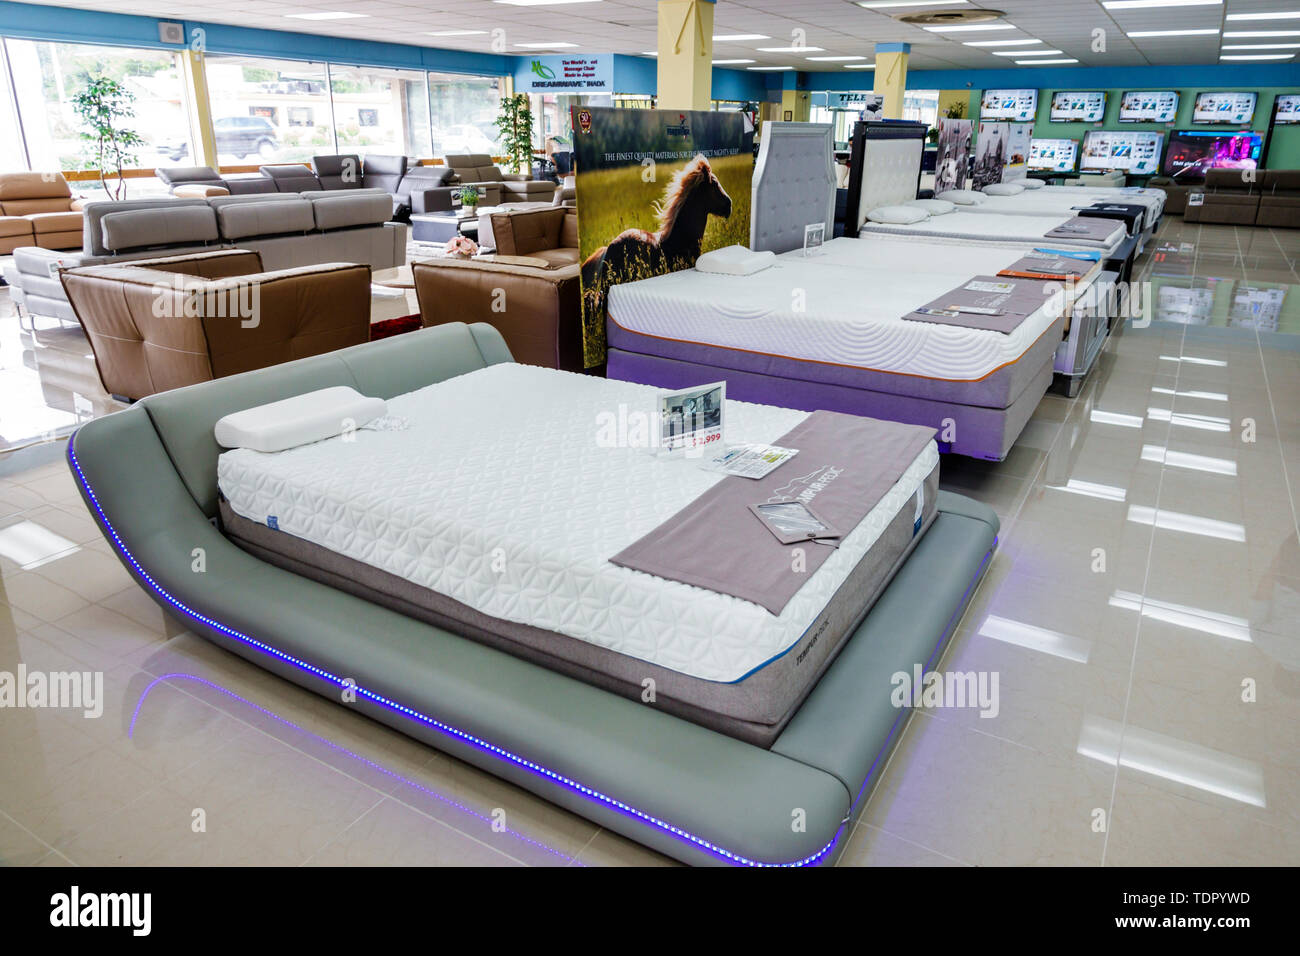 Mattress Sale High Resolution Stock Photography And Images Alamy